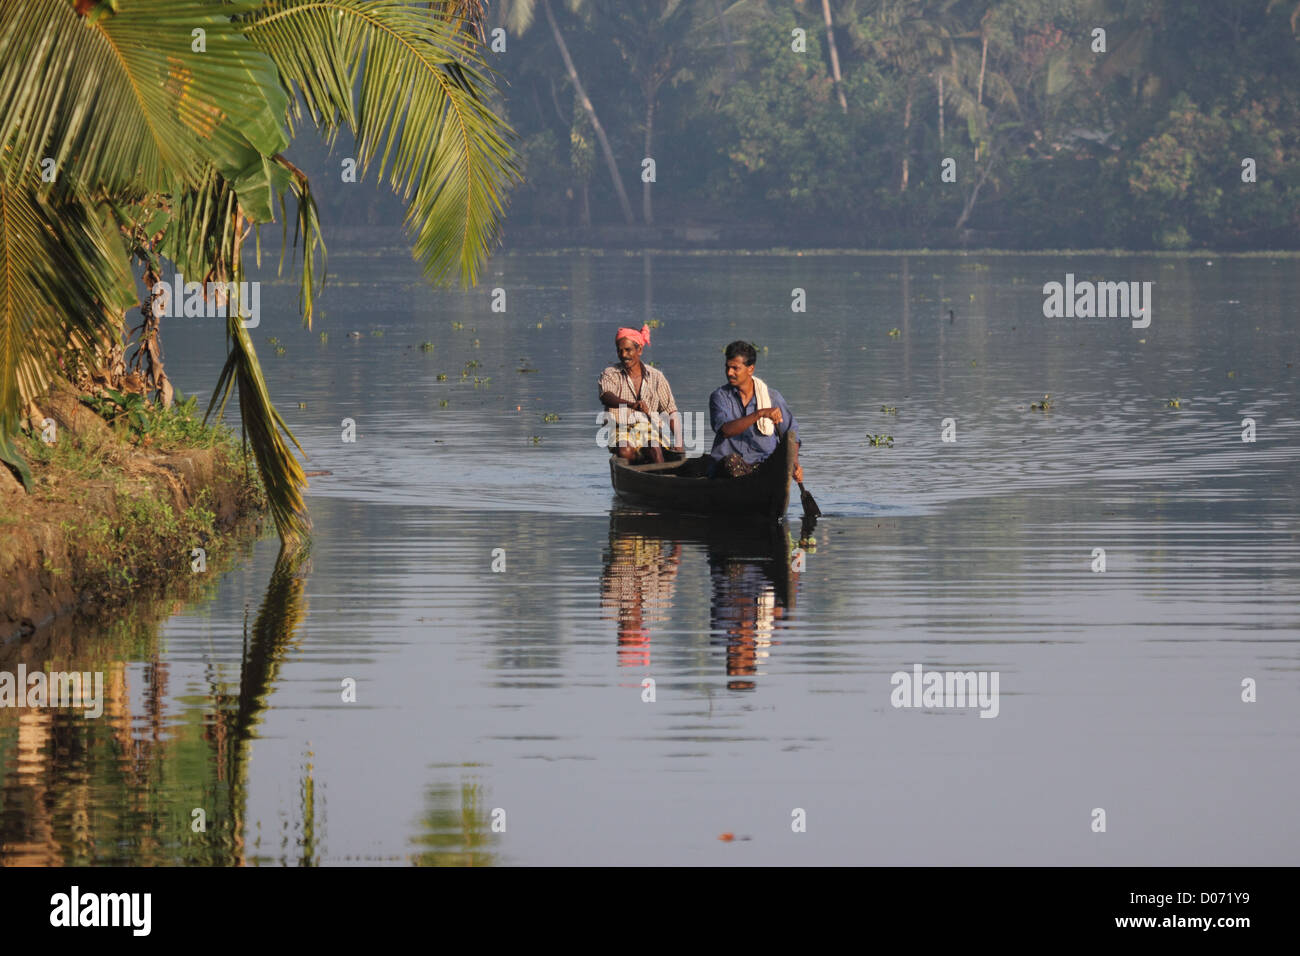 Two Keralites rowing across the backwaters in kerala. - Stock Image